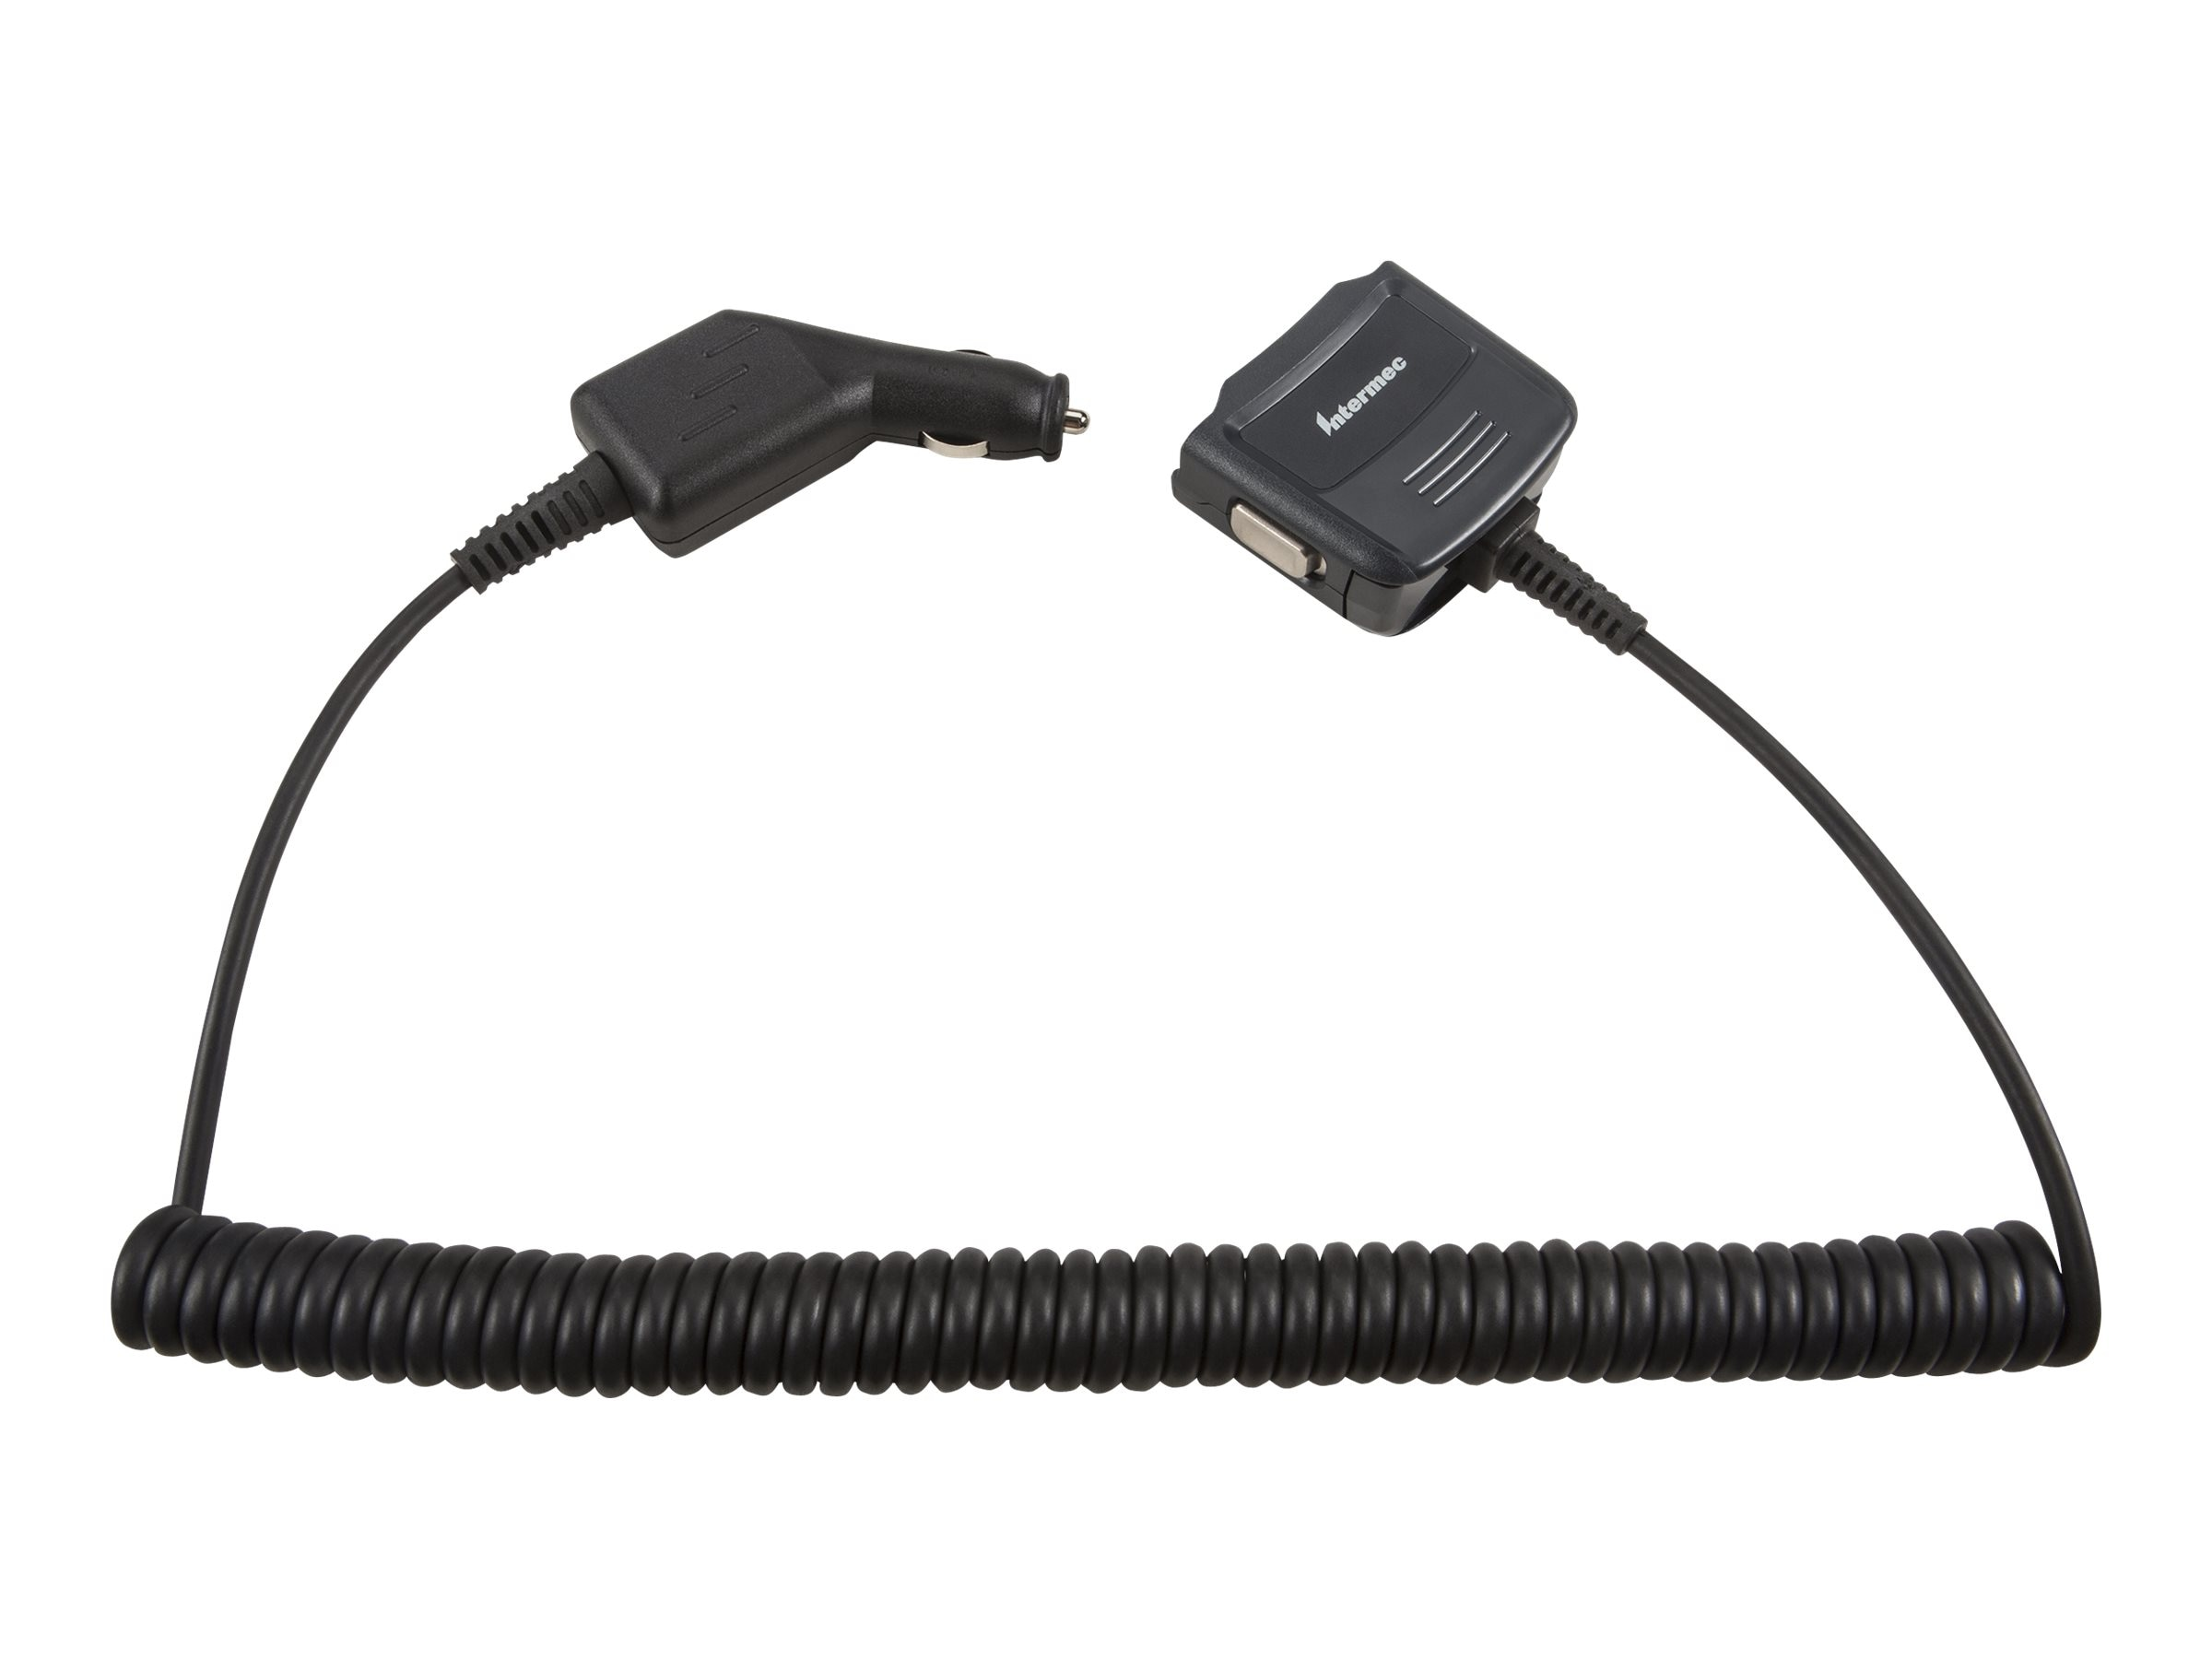 Intermec Endcap Power Adapter, Vehicle for CN CK70, 852-074-001, 30612032, Automobile/Airline Power Adapters